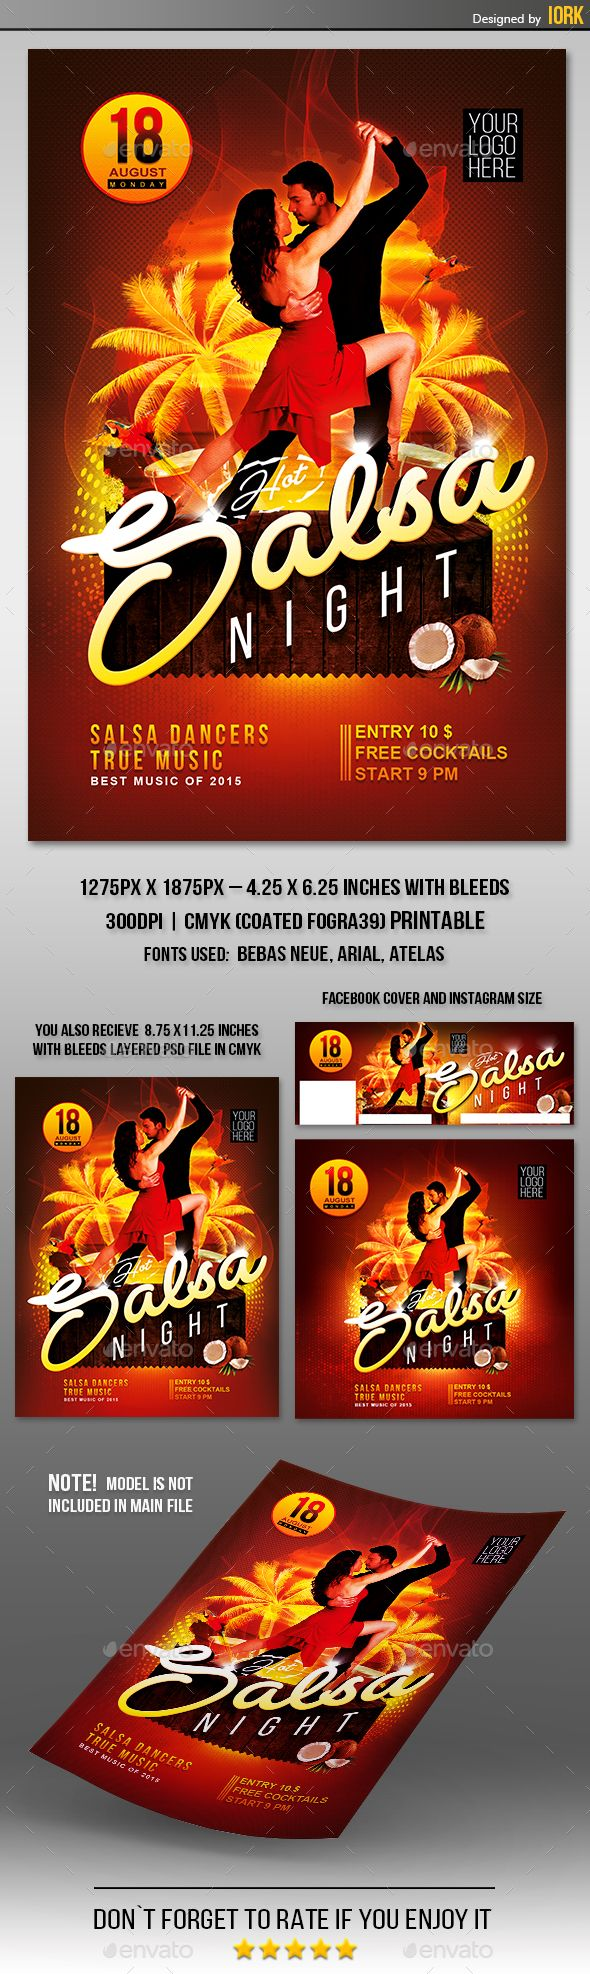 Hot Salsa #Night #flyer and poster - #Events Flyers Download here: https://graphicriver.net/item/hot-salsa-night-flyer-and-poster/19482983?ref=alena994